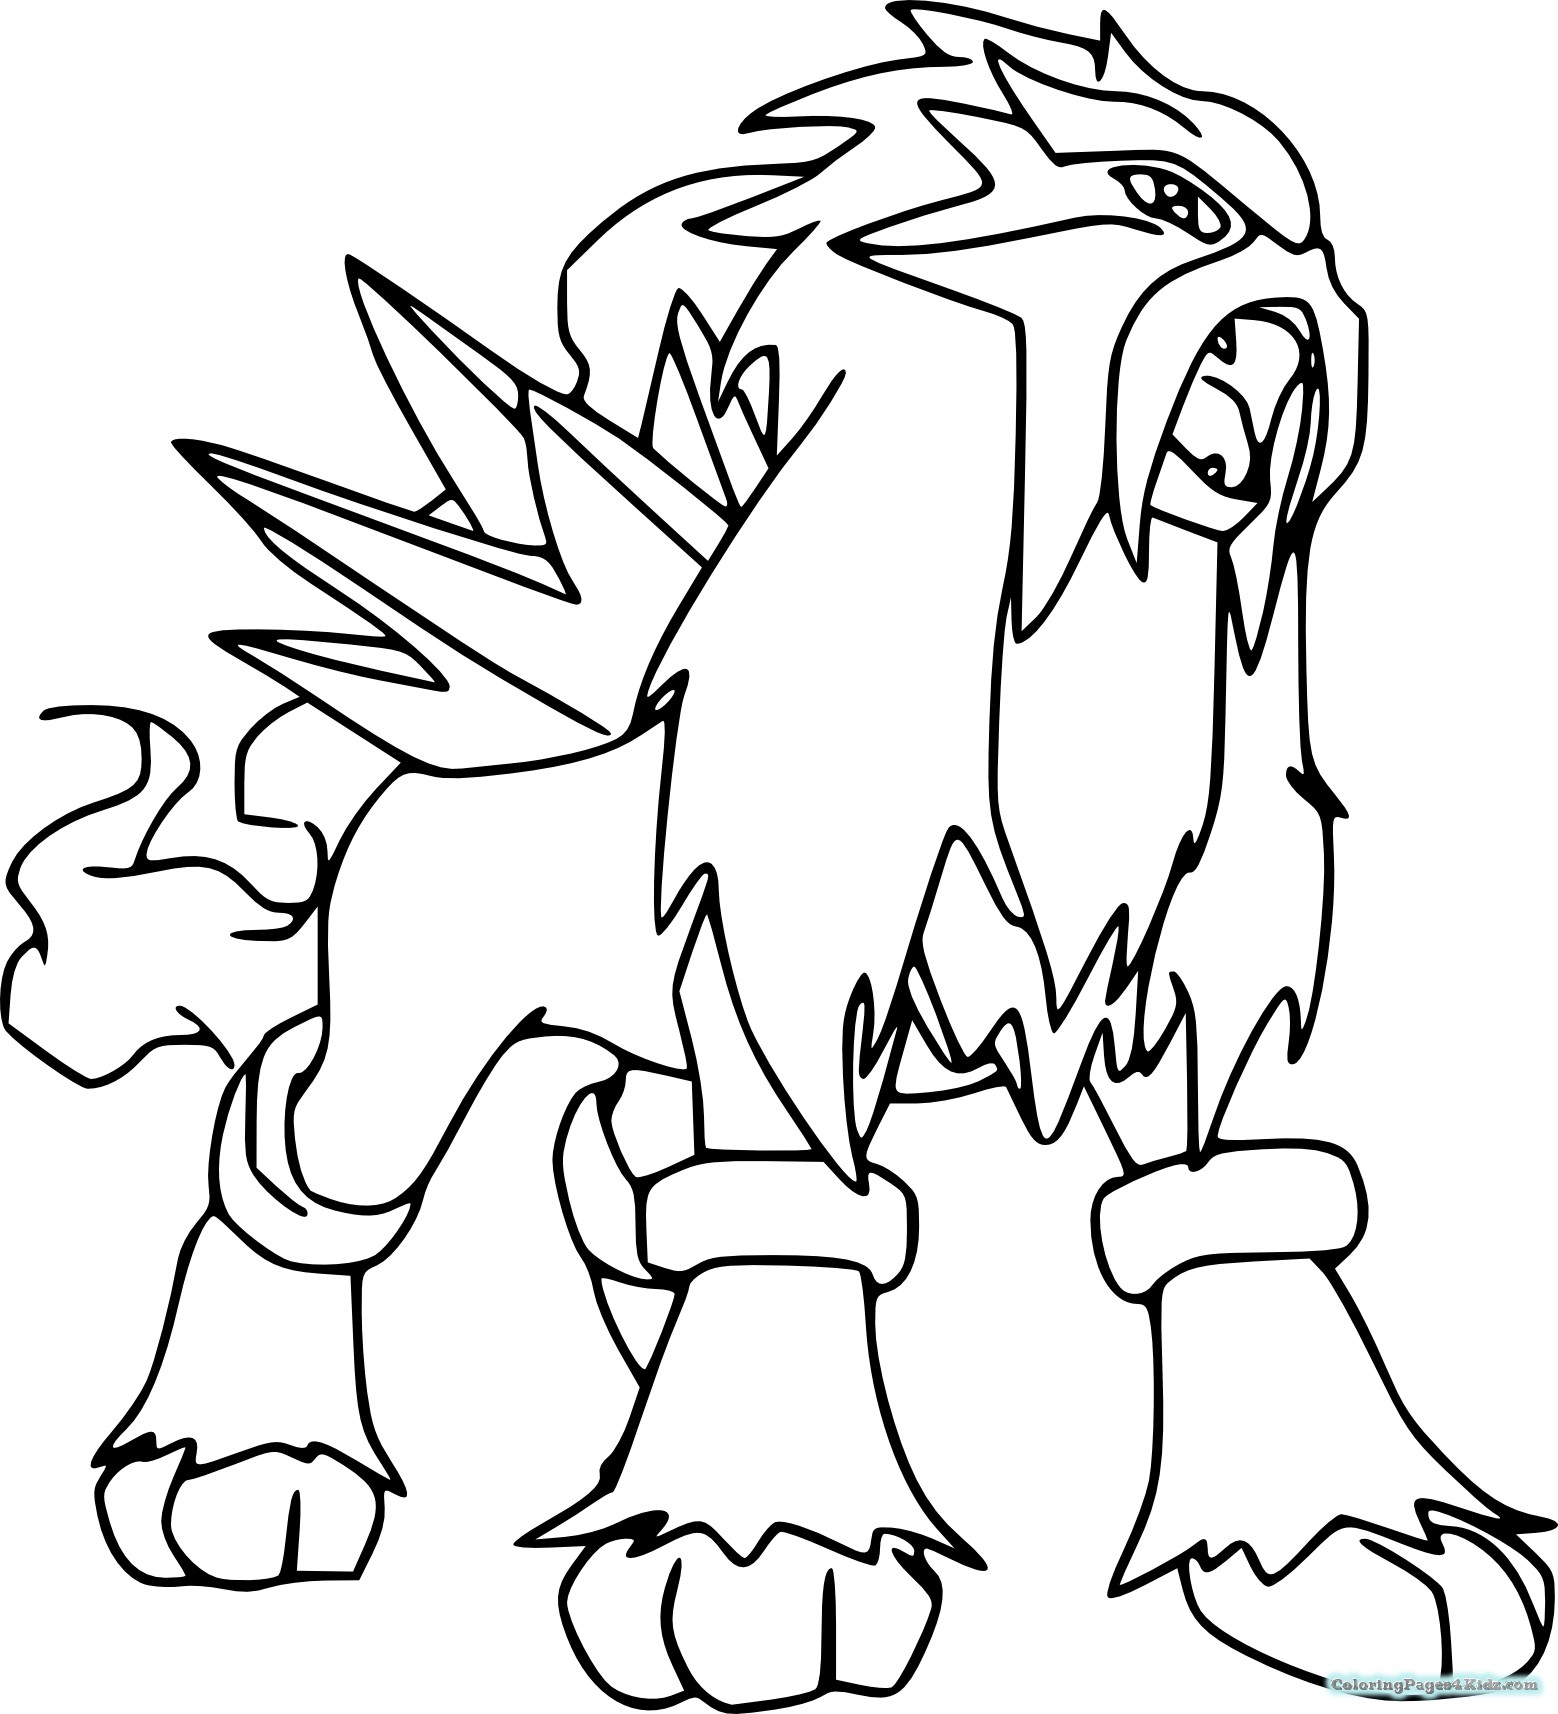 coloring pages pokemon legendary free legendary pokemon coloring pages for kids pages legendary coloring pokemon